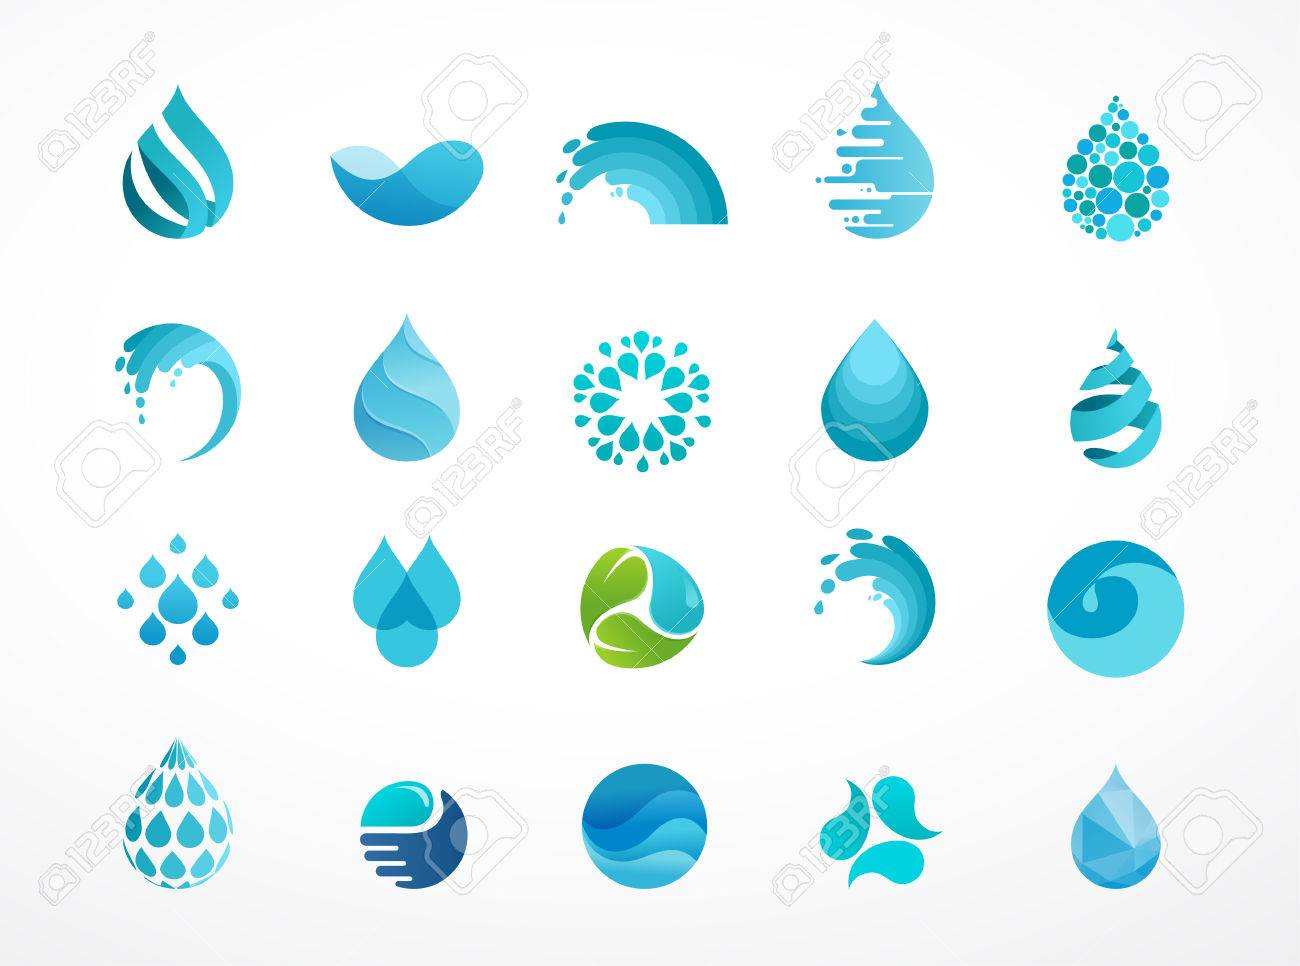 set of water, wave and drop icons, symbols - 58658824